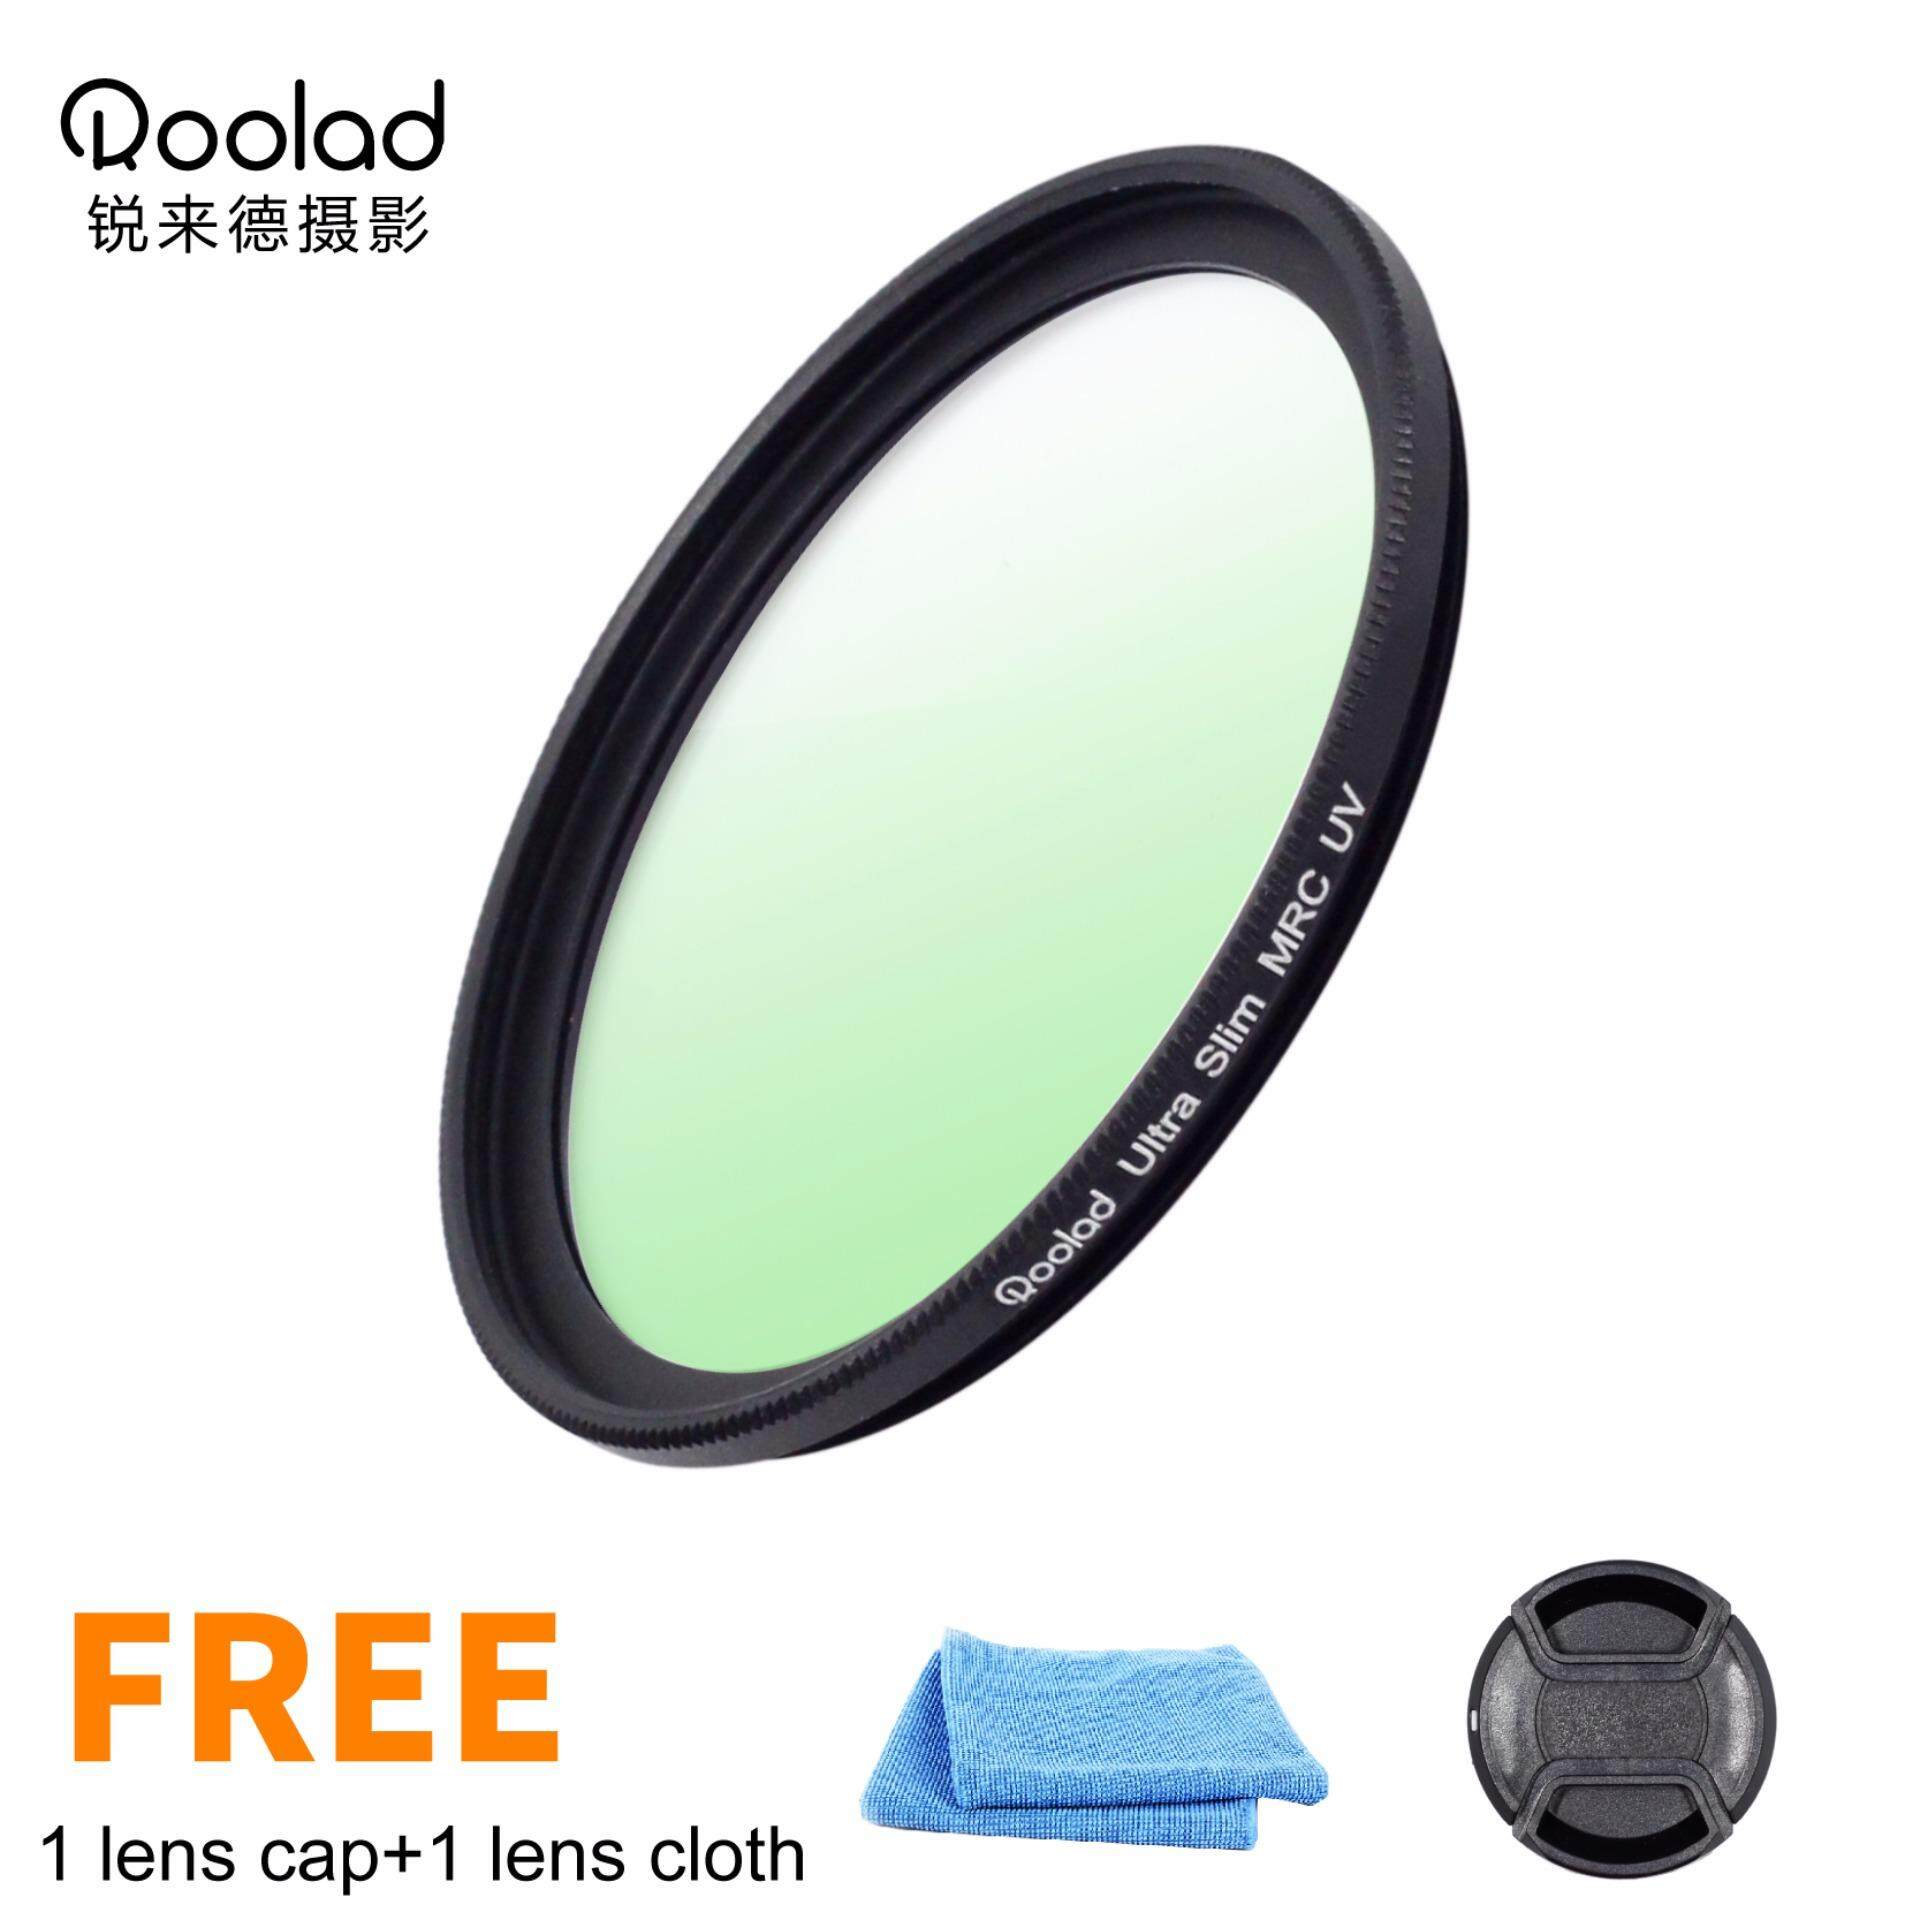 Price Roolad 37Mm Mc Uv Ultra Slim Protect Filter For Camera Lens With Lens Cloth And Lens Cap Black Intl Online China